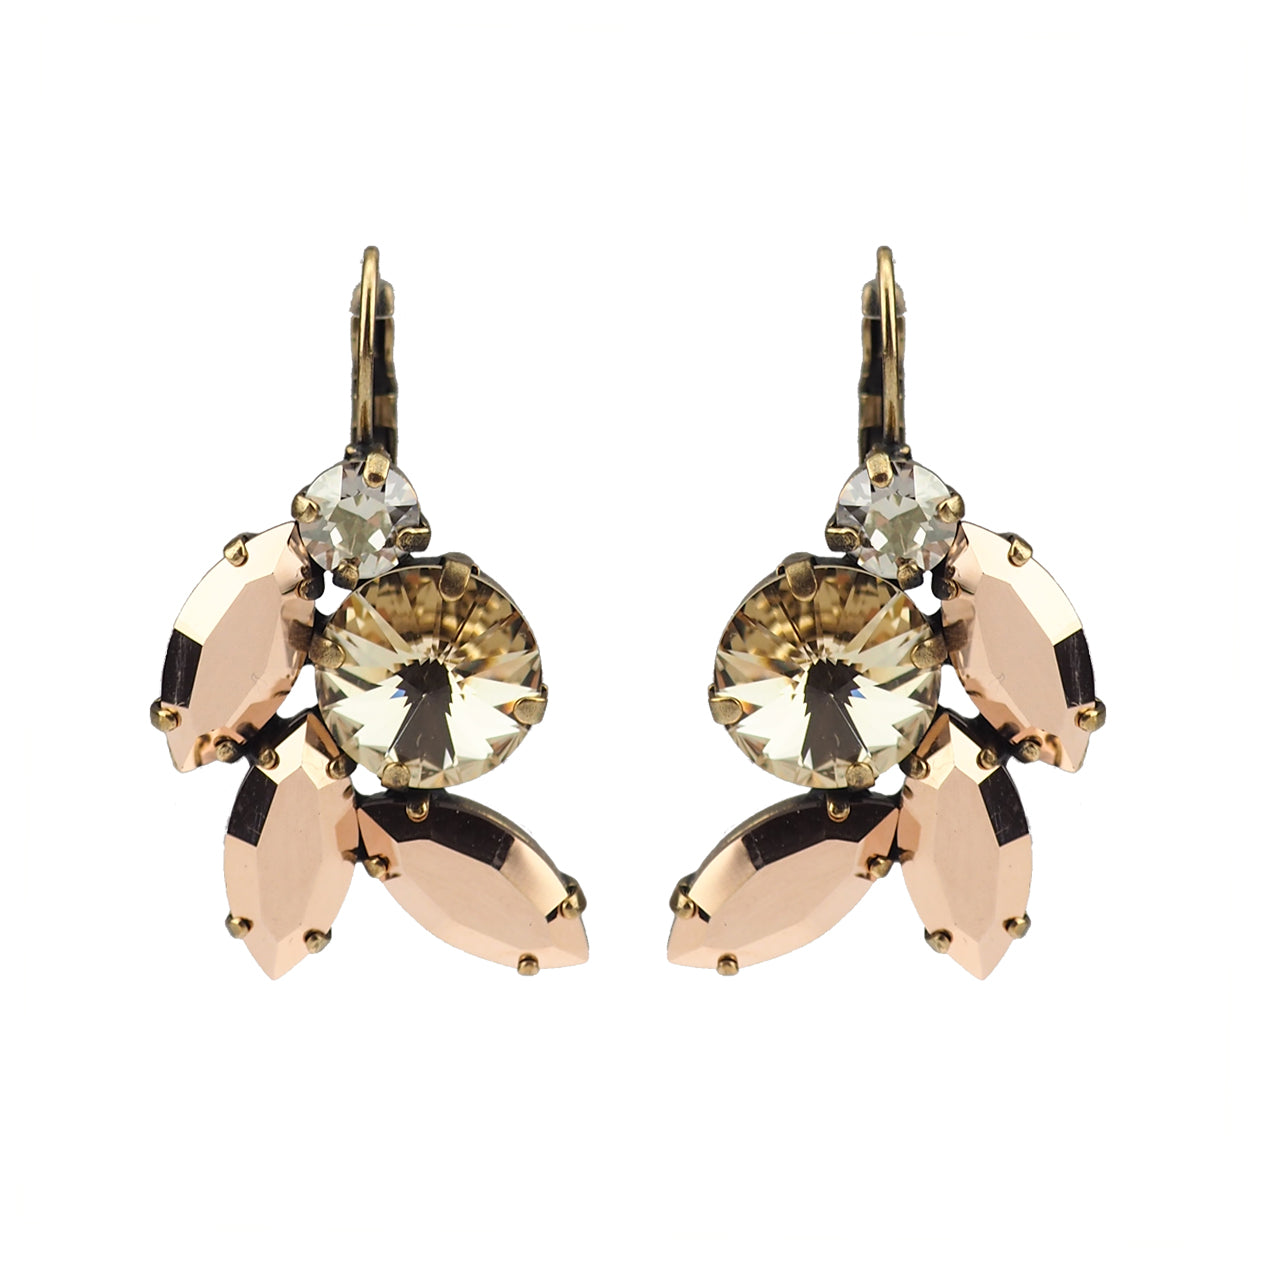 Devoted to You Earrings - Rose Gold